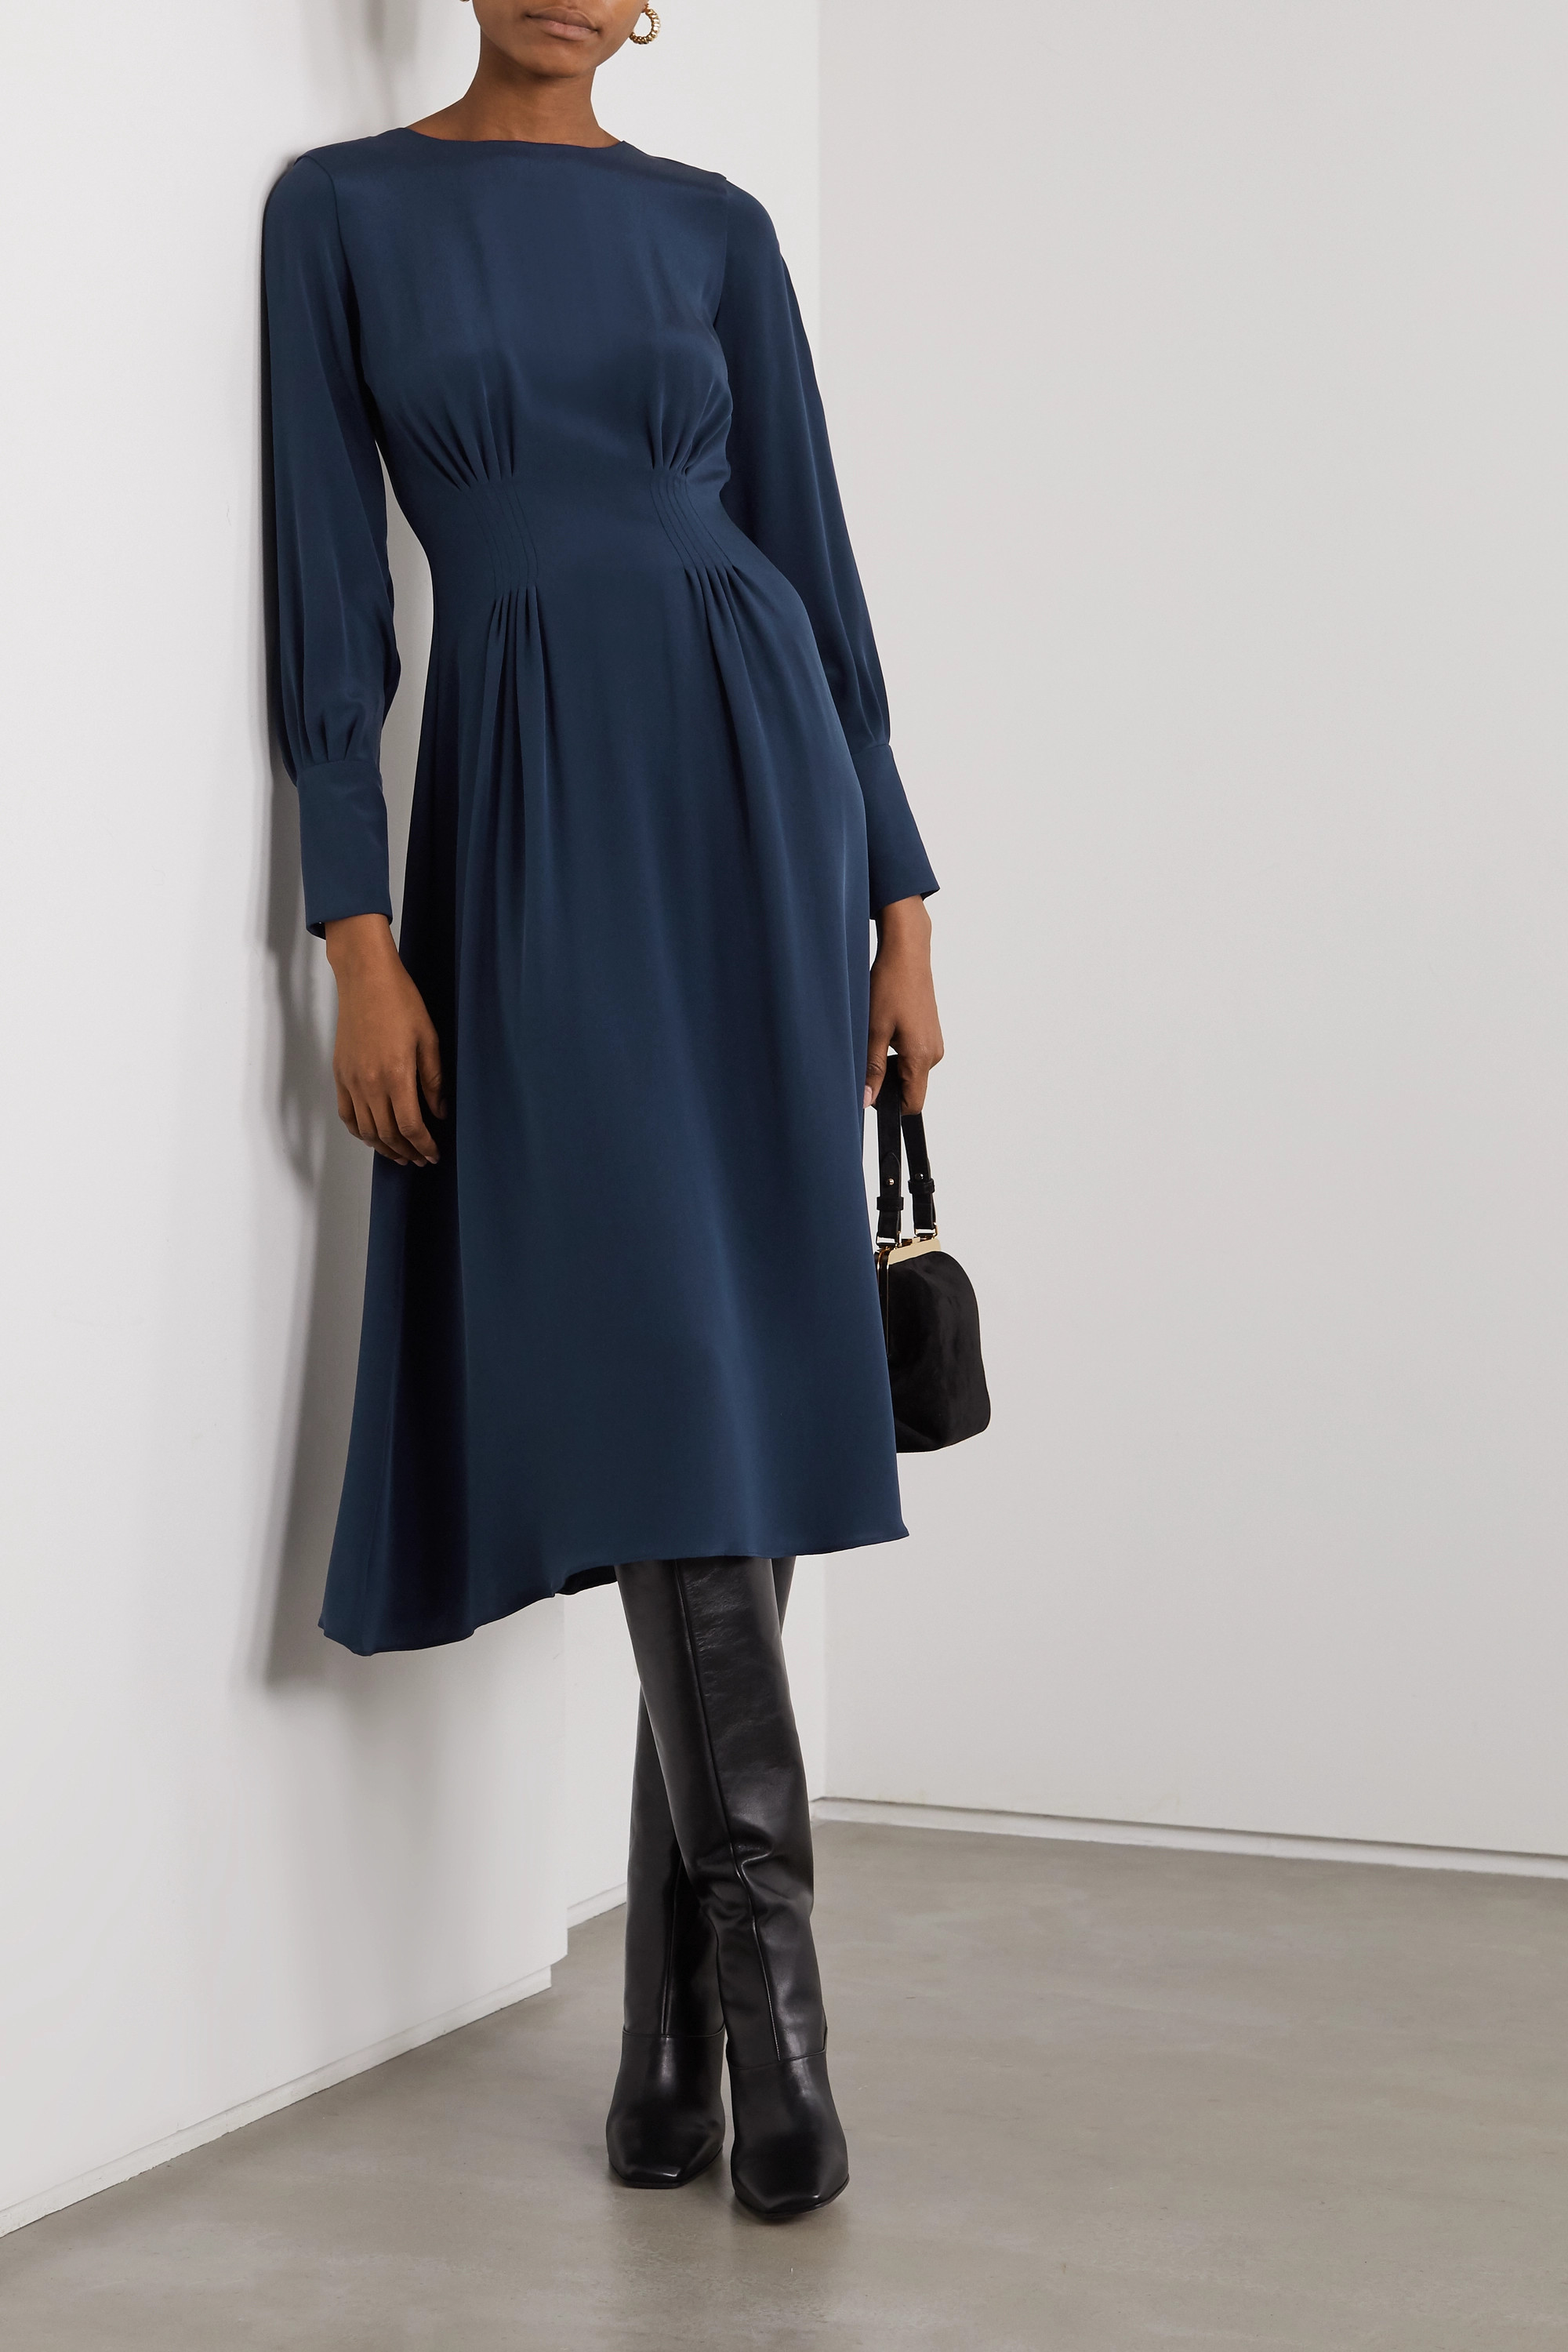 YOOX NET-A-PORTER FOR THE PRINCE'S FOUNDATION Pleated organic silk midi dress